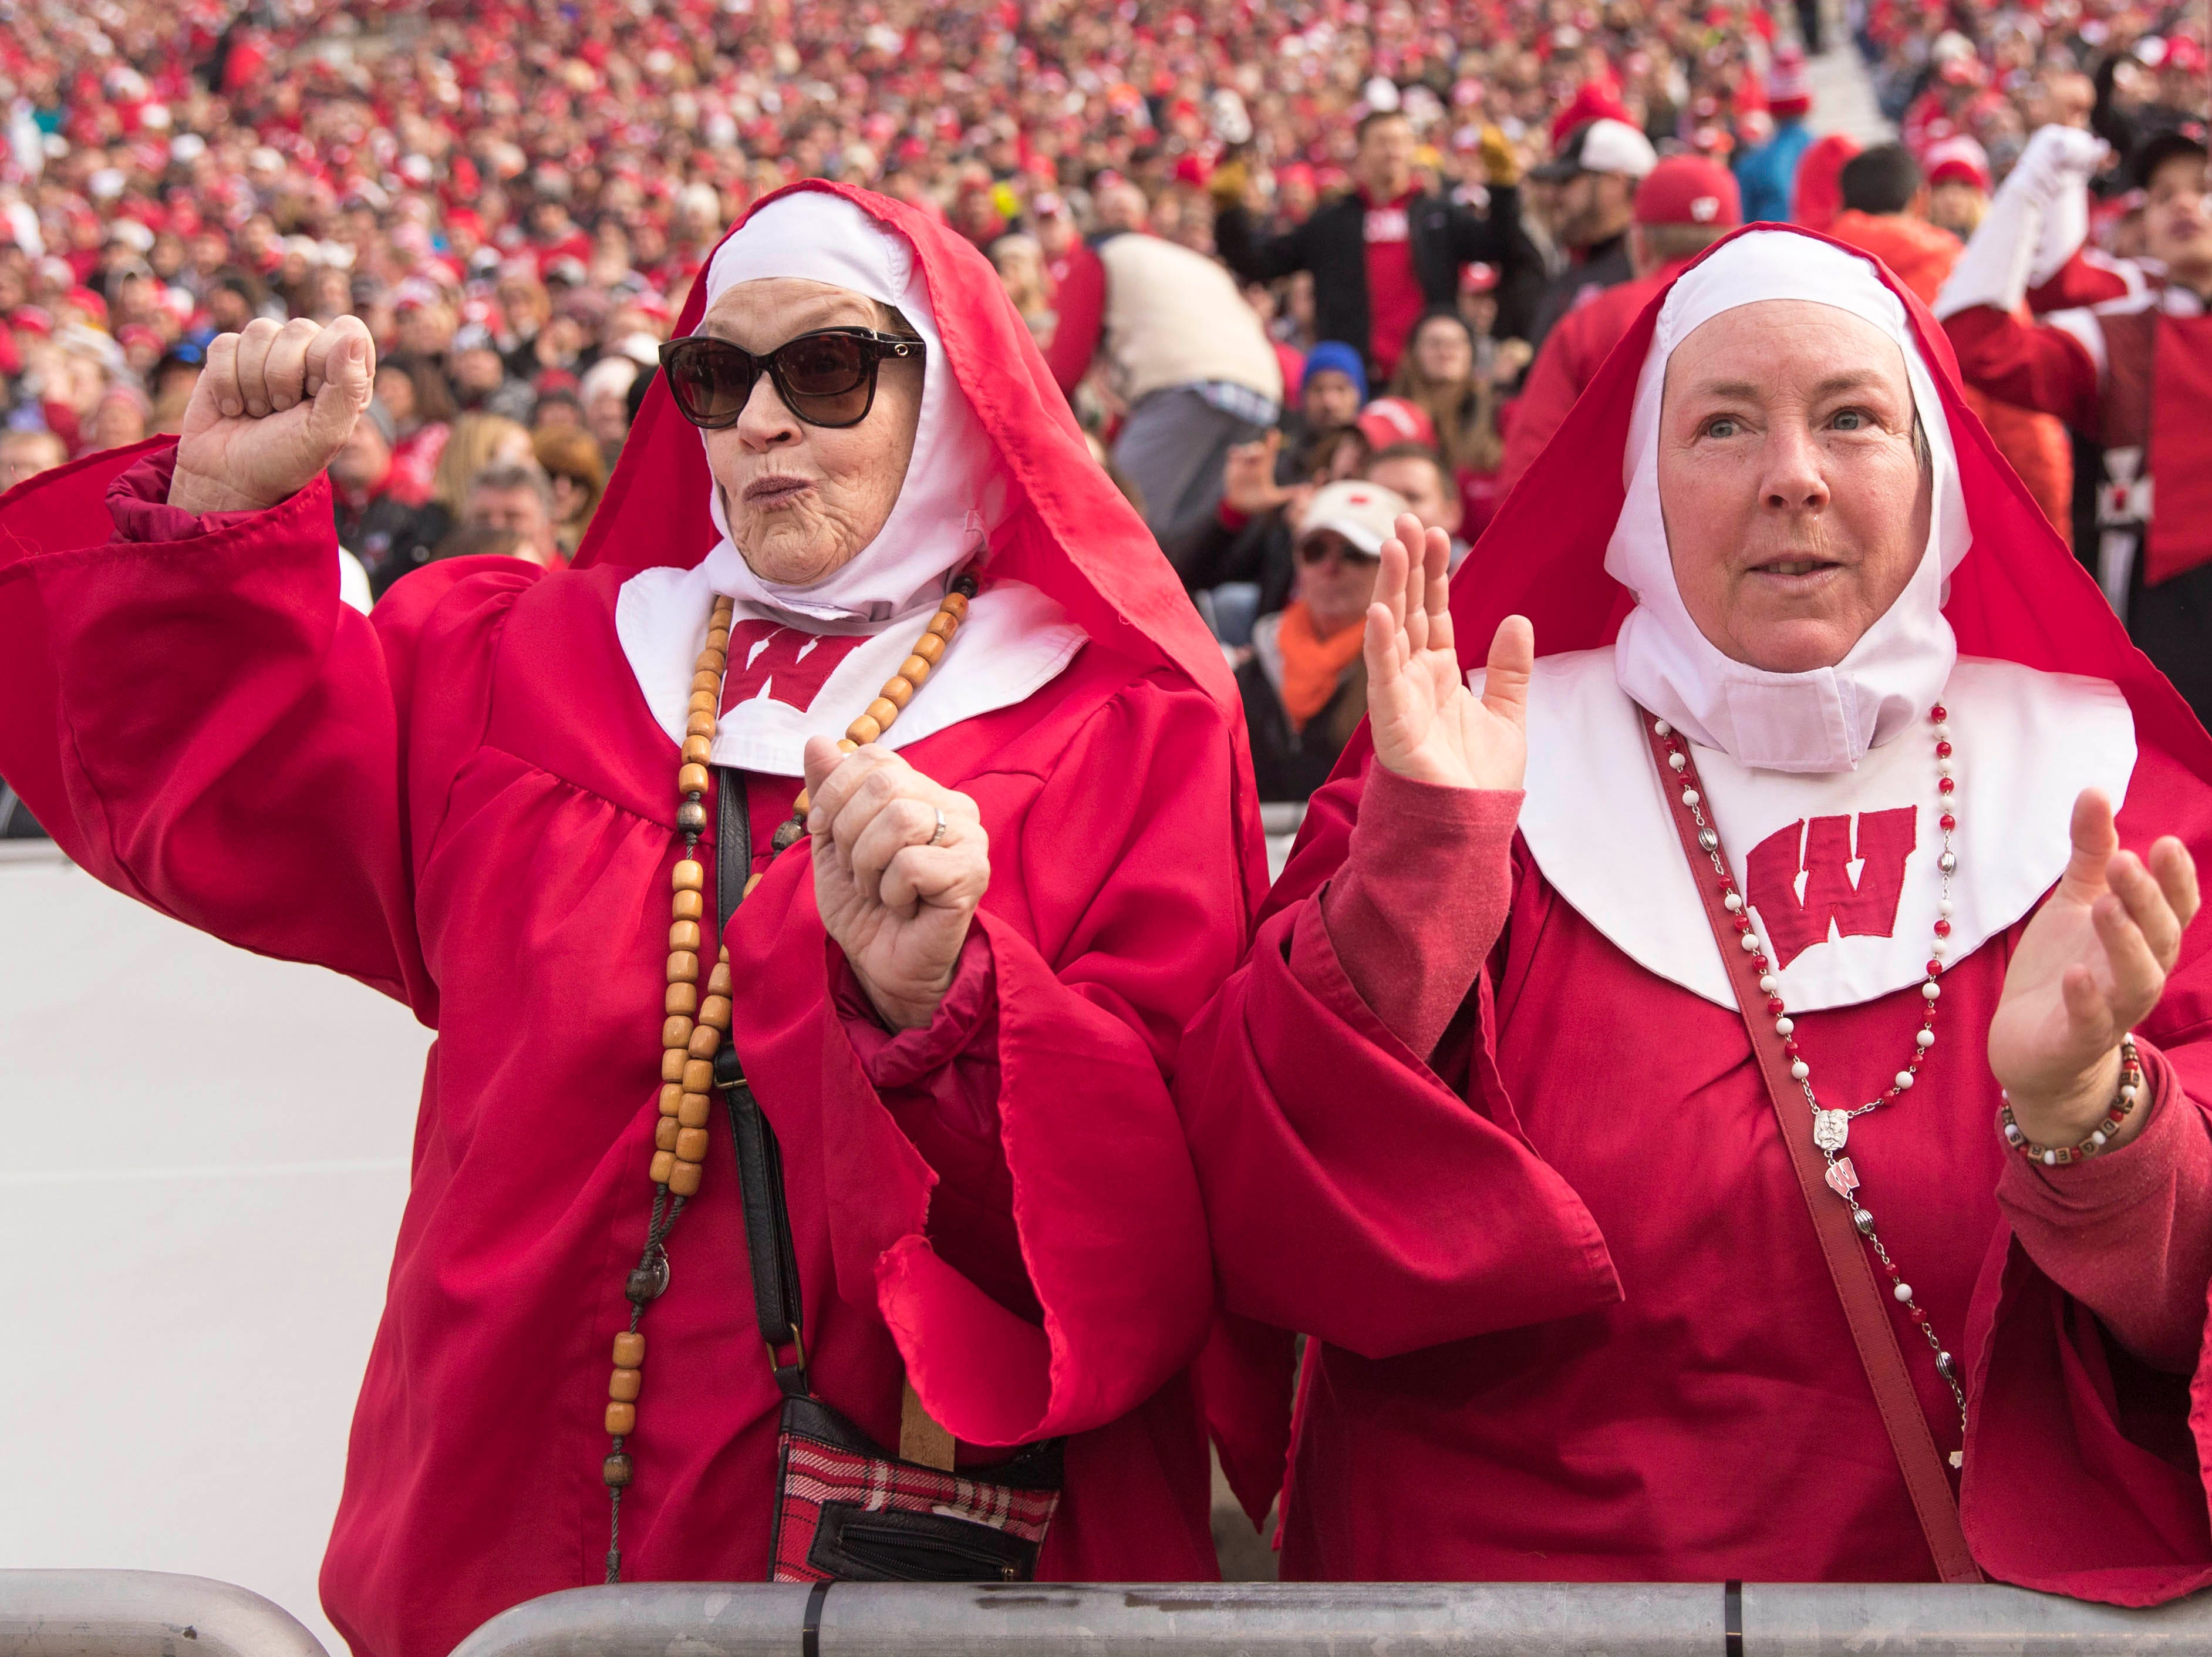 Week 10: Two nuns cheer during the third quarter of the game between the Rutgers Scarlet Knights and Wisconsin Badgers at Camp Randall Stadium.